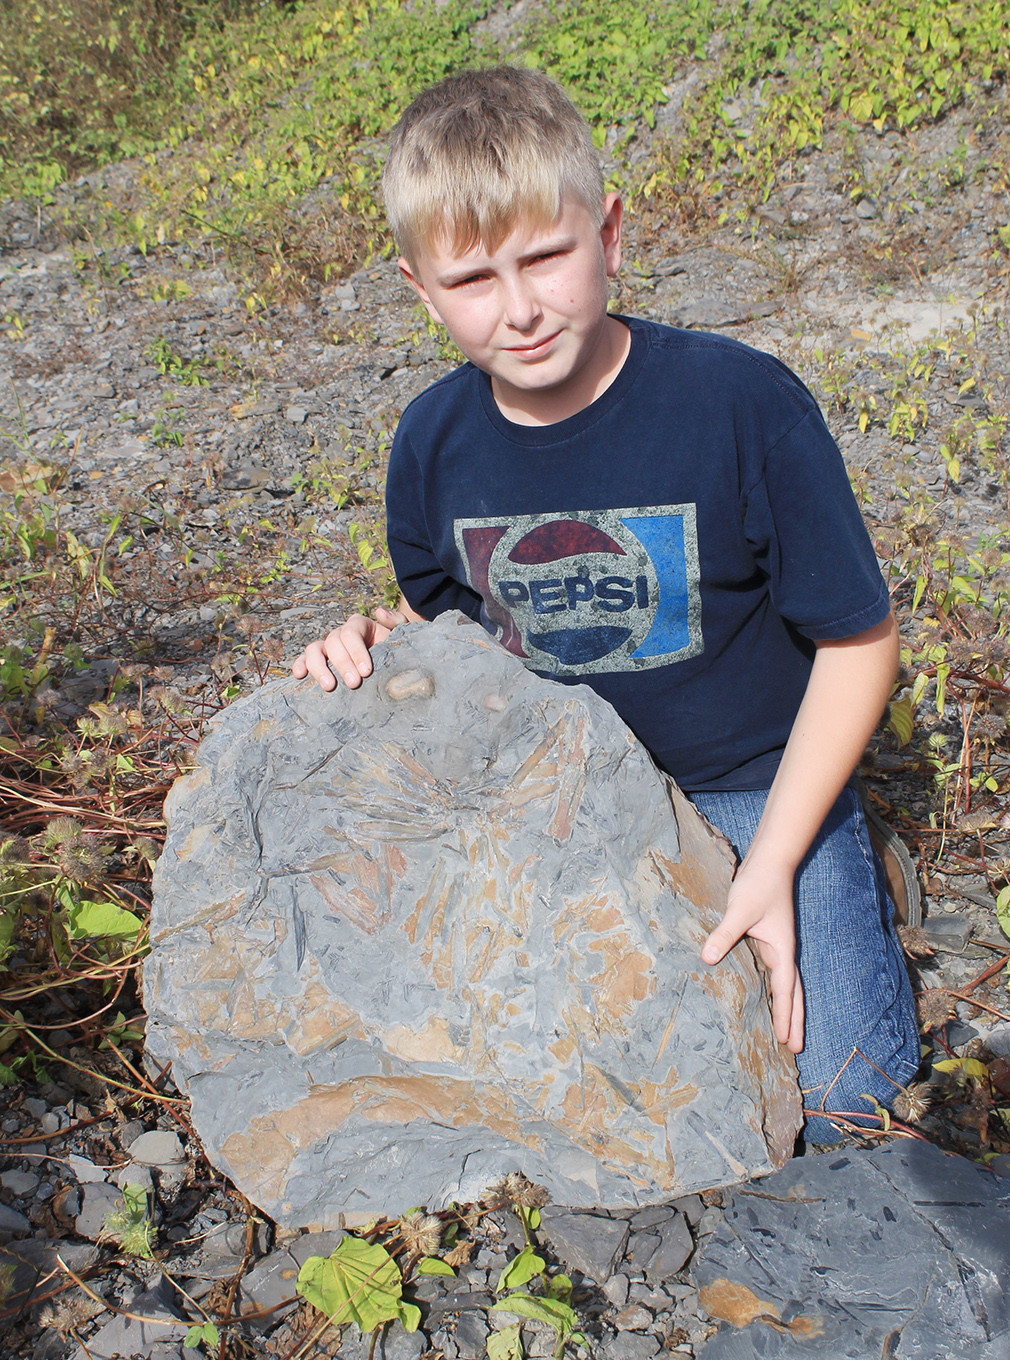 Camden Davis, 12, of Jasper, poses with the fossils he found at the Steven C. Minkin Paleozoic Footprint Site in Union Chapel on Oct. 14. The fossil has been removed from the site and will become part of the McWane Center's collection.  Daily Mountain Eagle - Jennifer Cohron